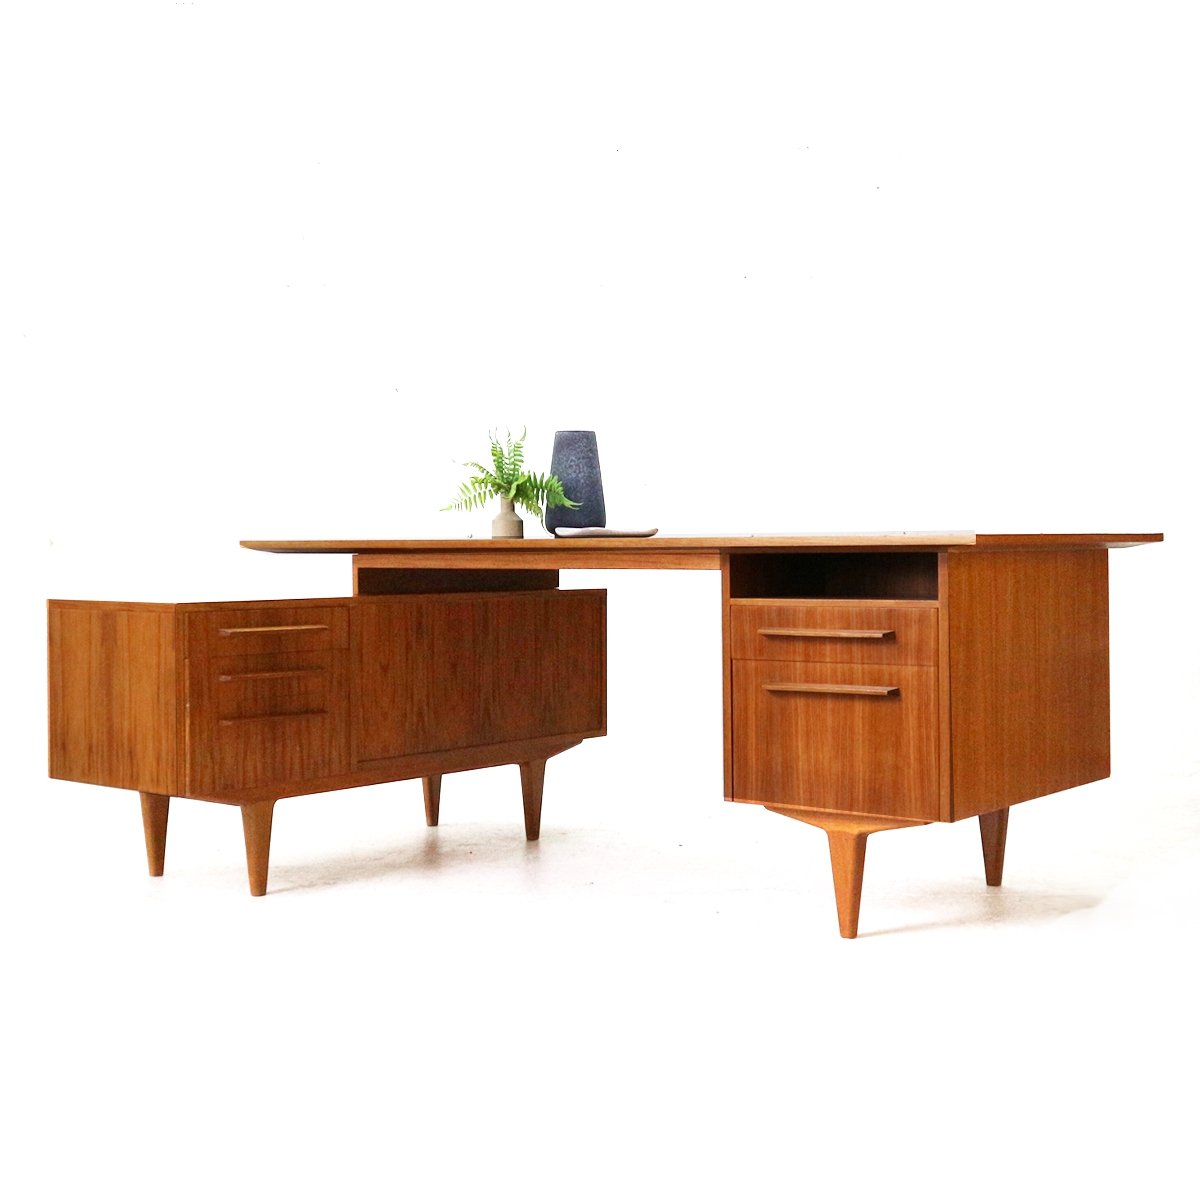 Image of: Large Mid Century Modern Executive Desk By Wk Mobel 1960s 104026